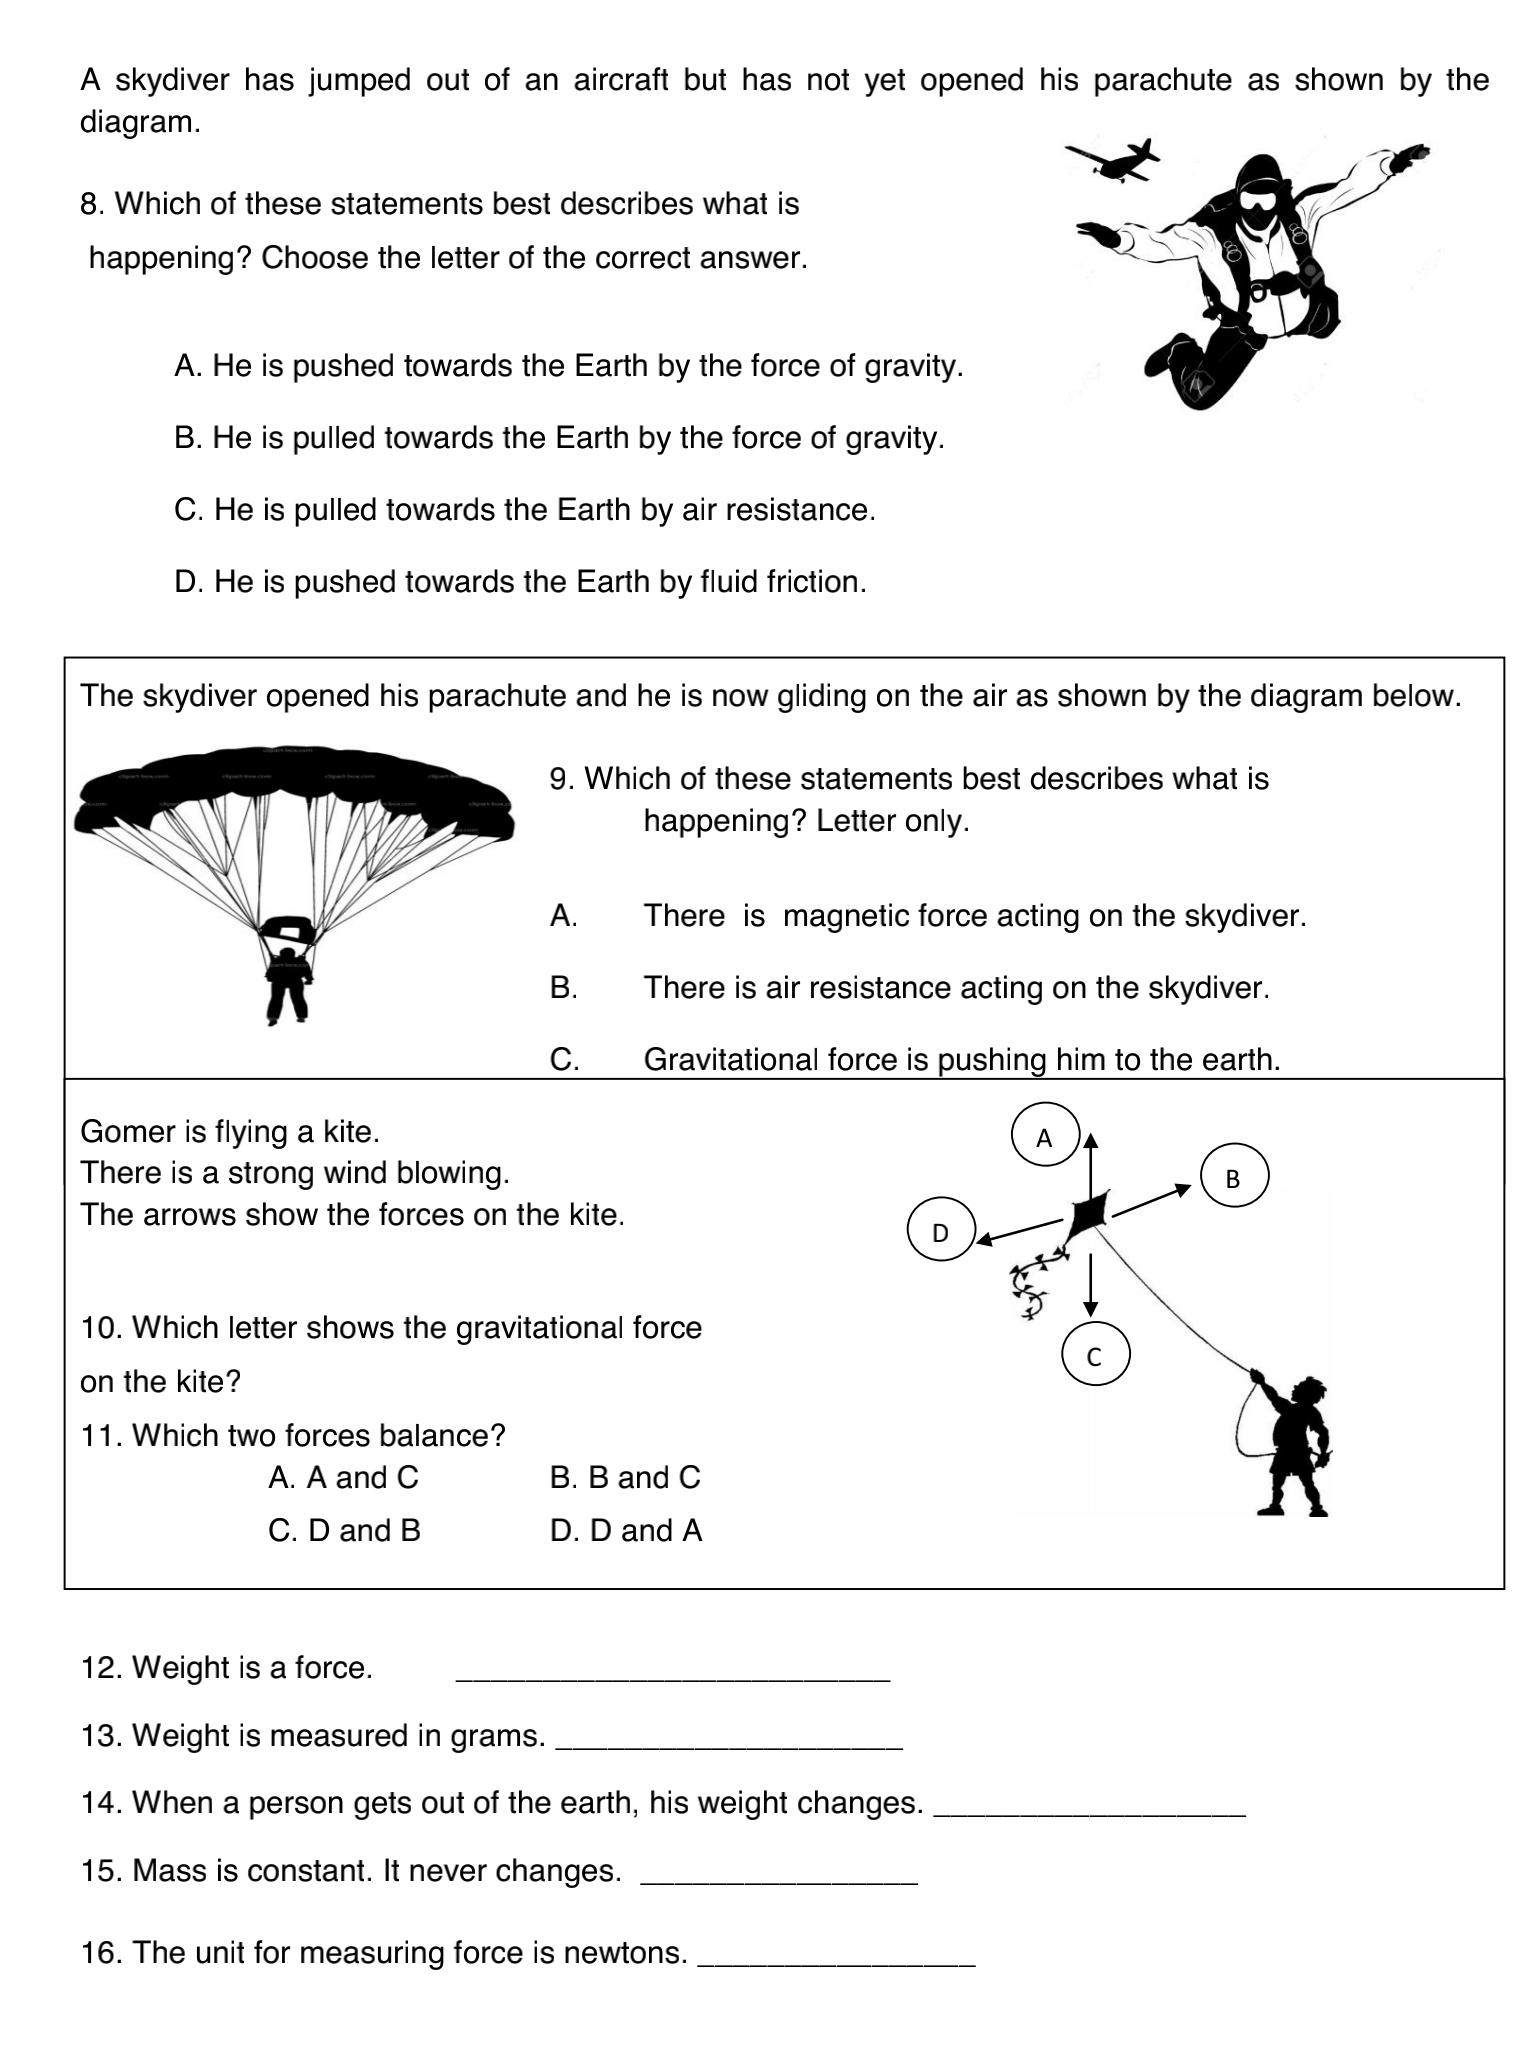 Forces And Parachutes Worksheet Answers